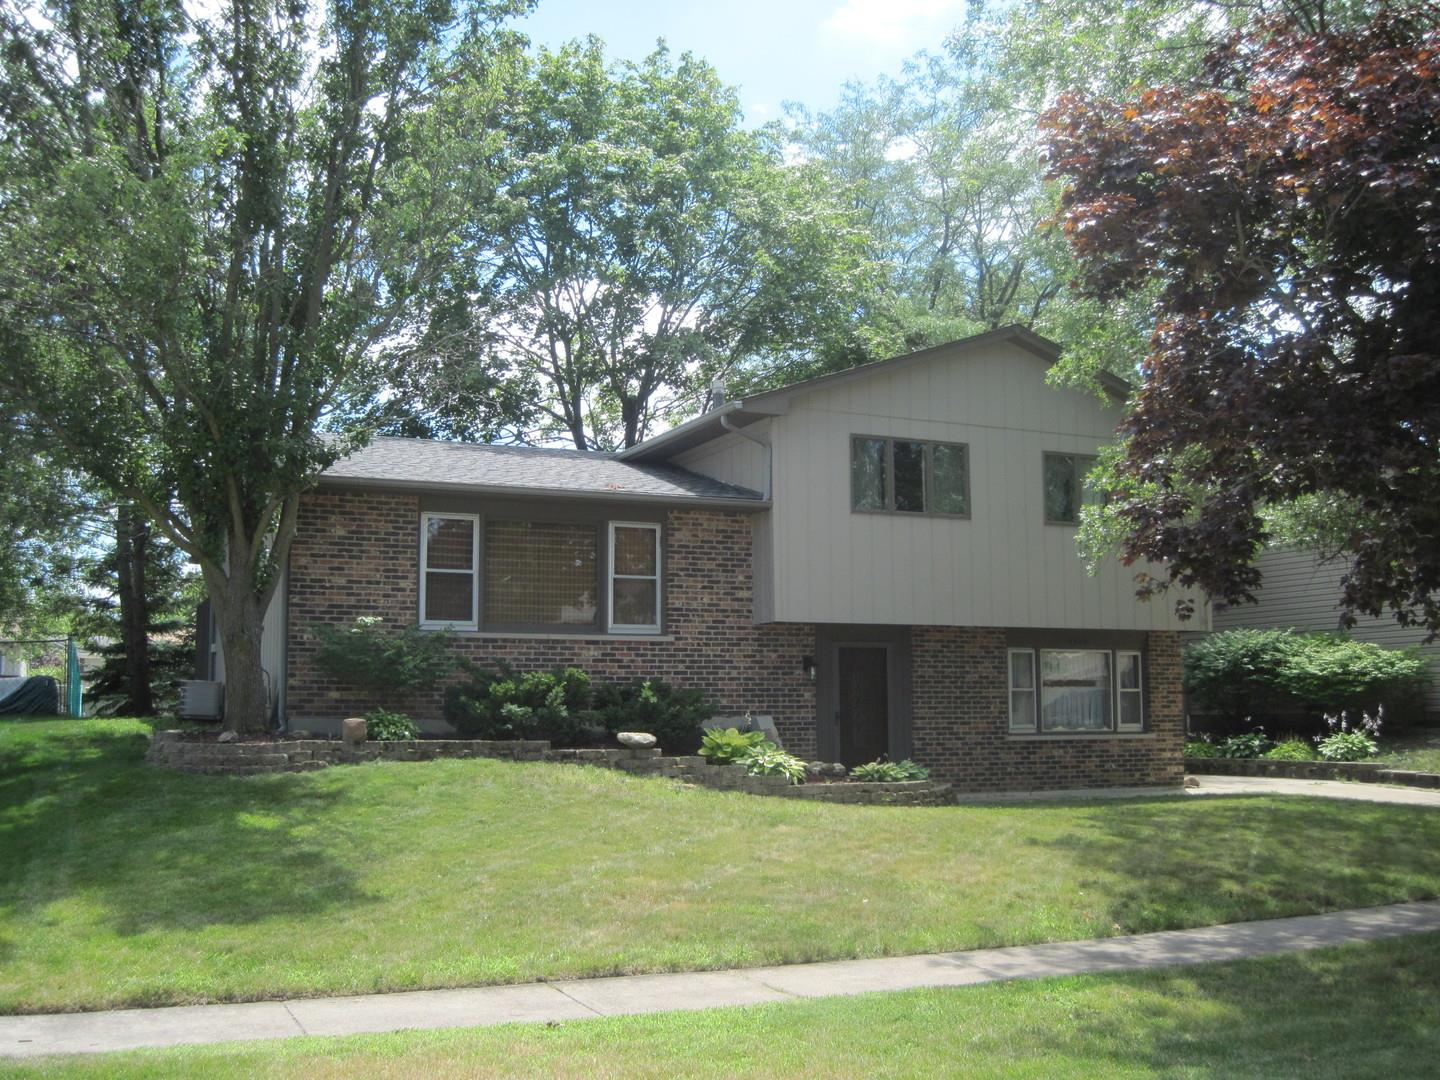 7745 166TH Place, Tinley Park, IL 60477 - #: 10963230